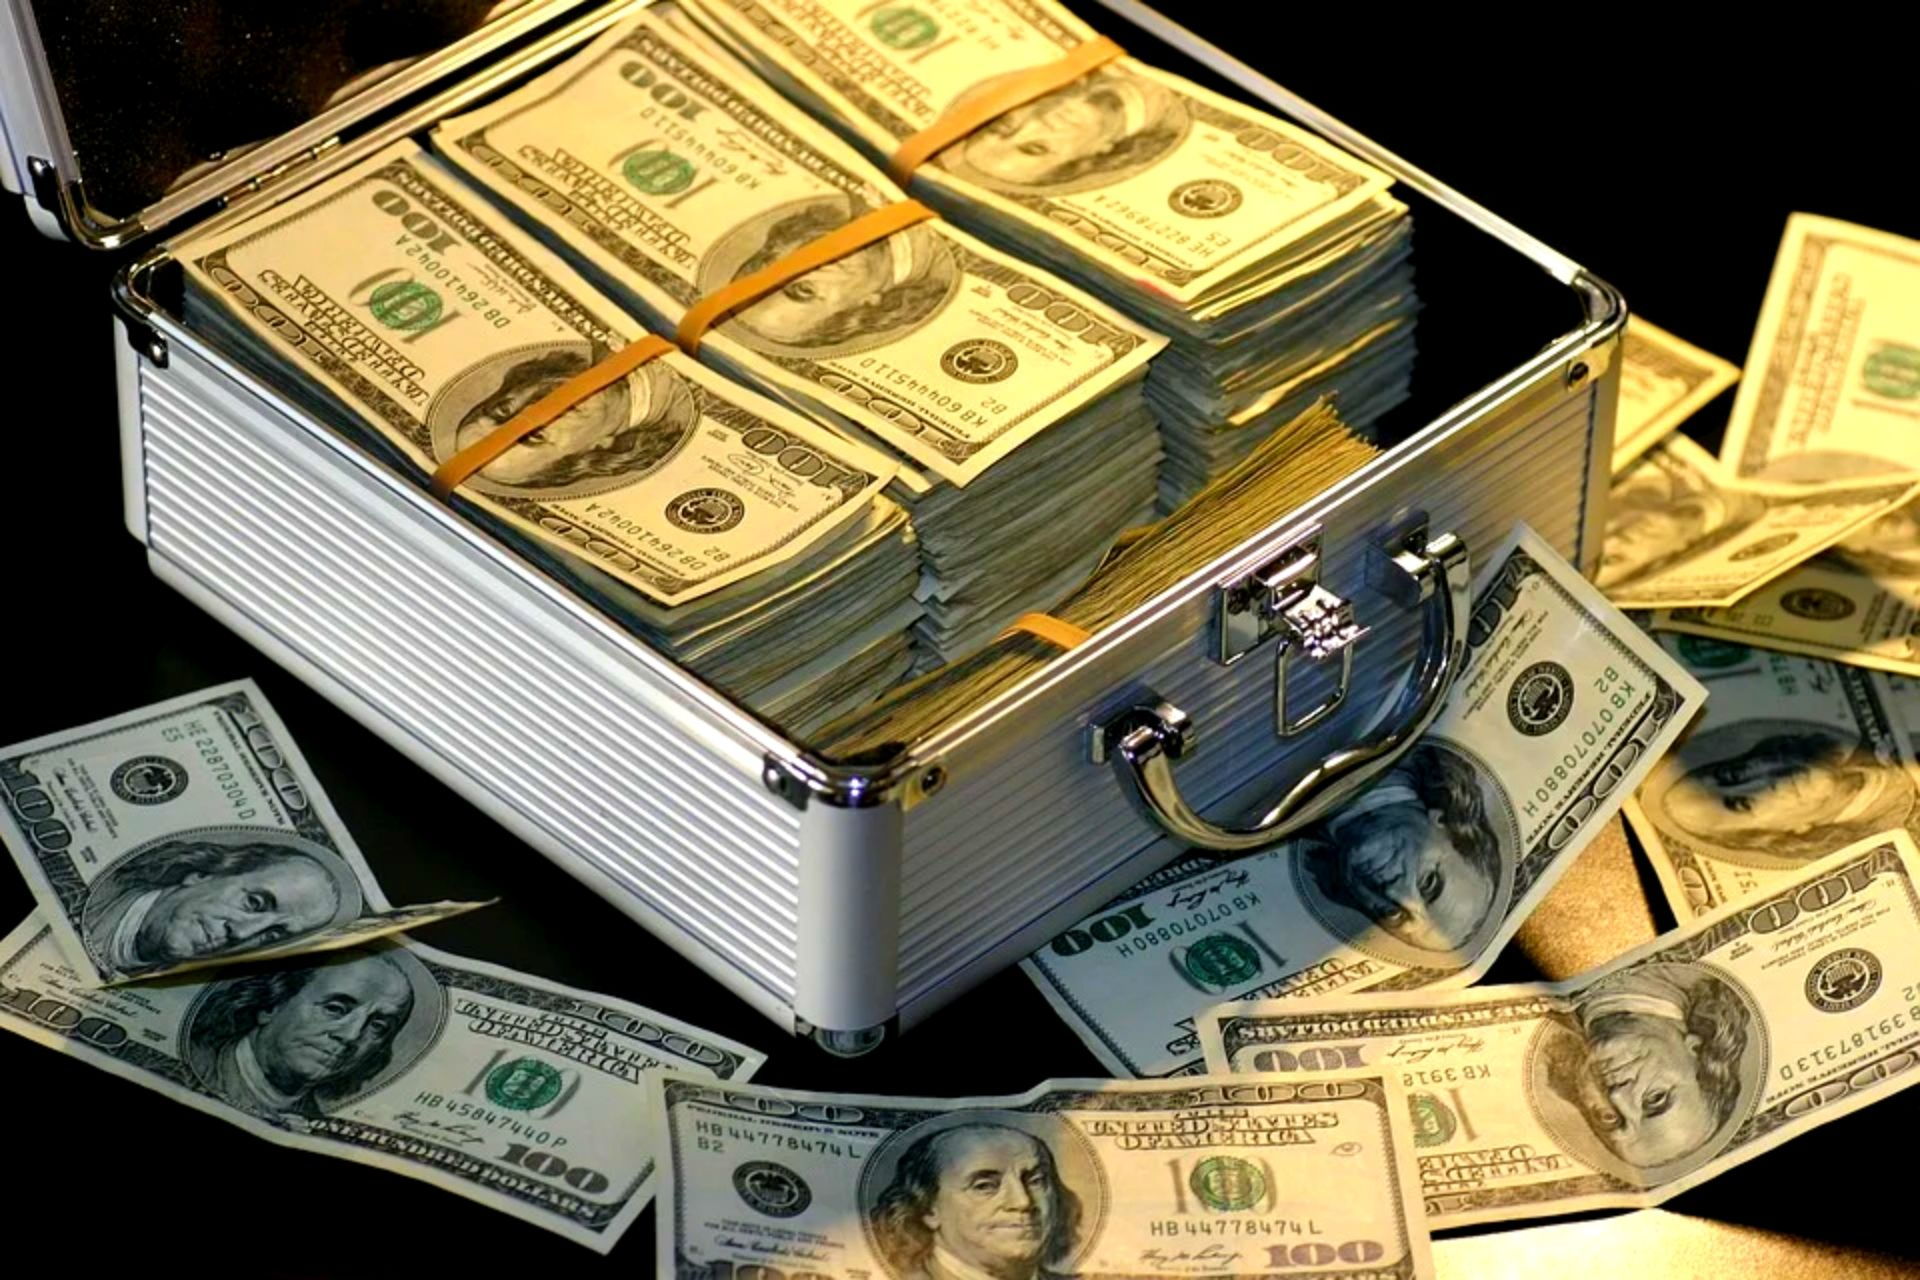 Lot of money through Get rich quick schemes that actually work